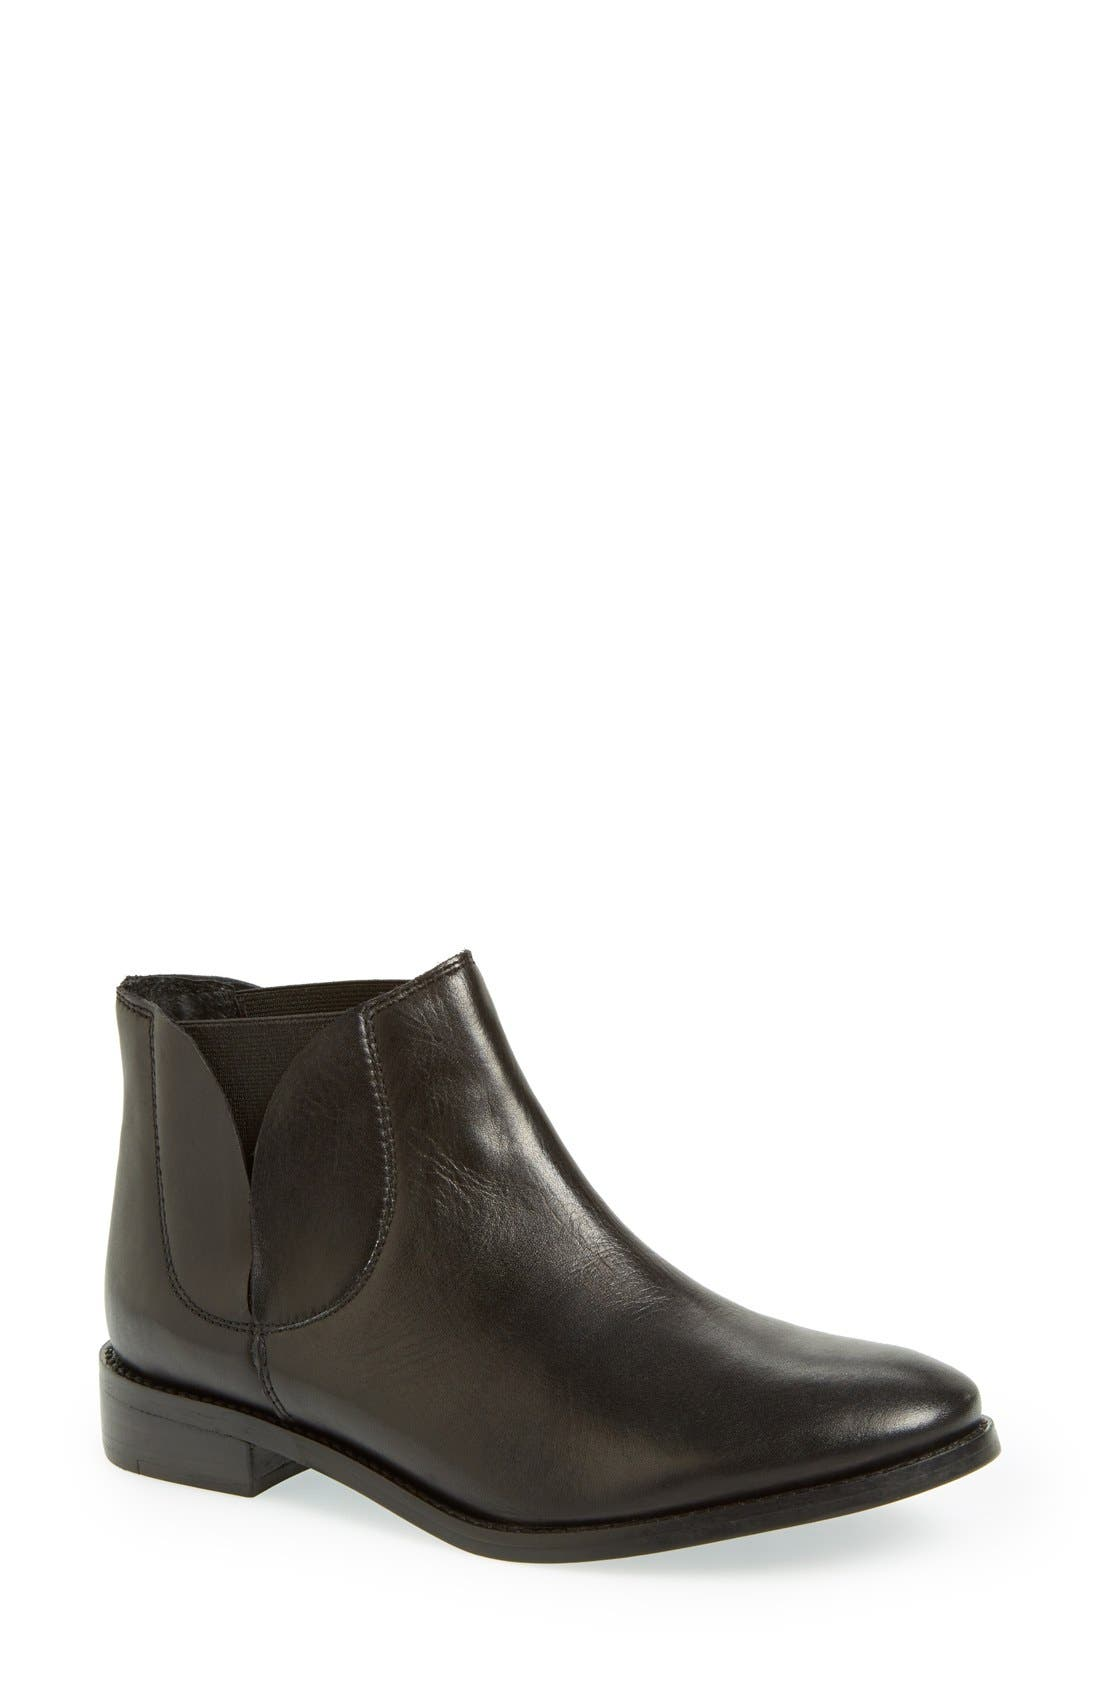 Alternate Image 1 Selected - Topshop 'Advent' Chelsea Boot (Women)